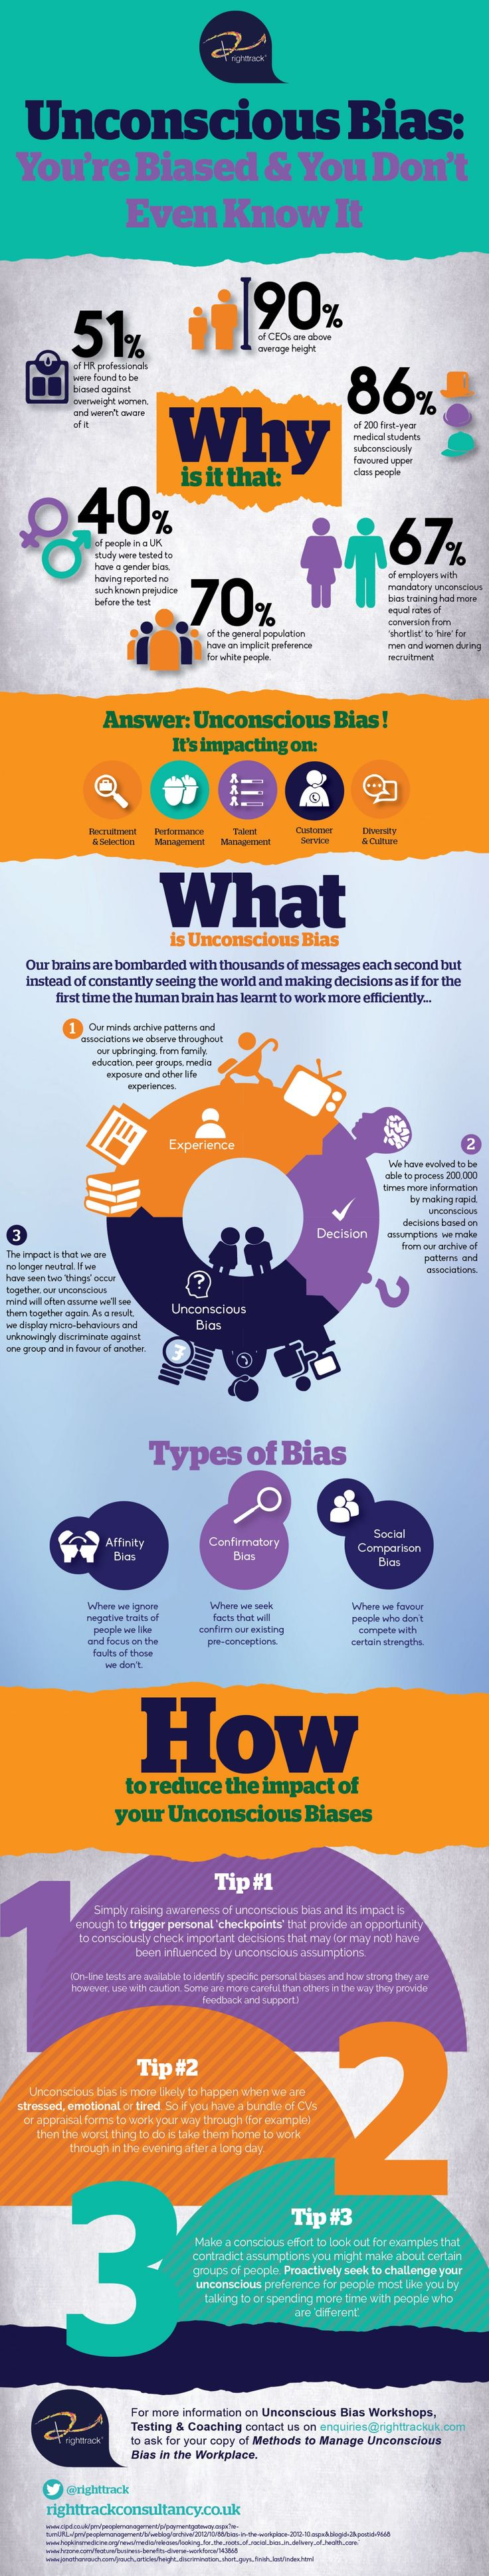 Unconscious Bias .... A must read! Most people fail to recognize it in themselves! Be aware of your thoughts (and words).